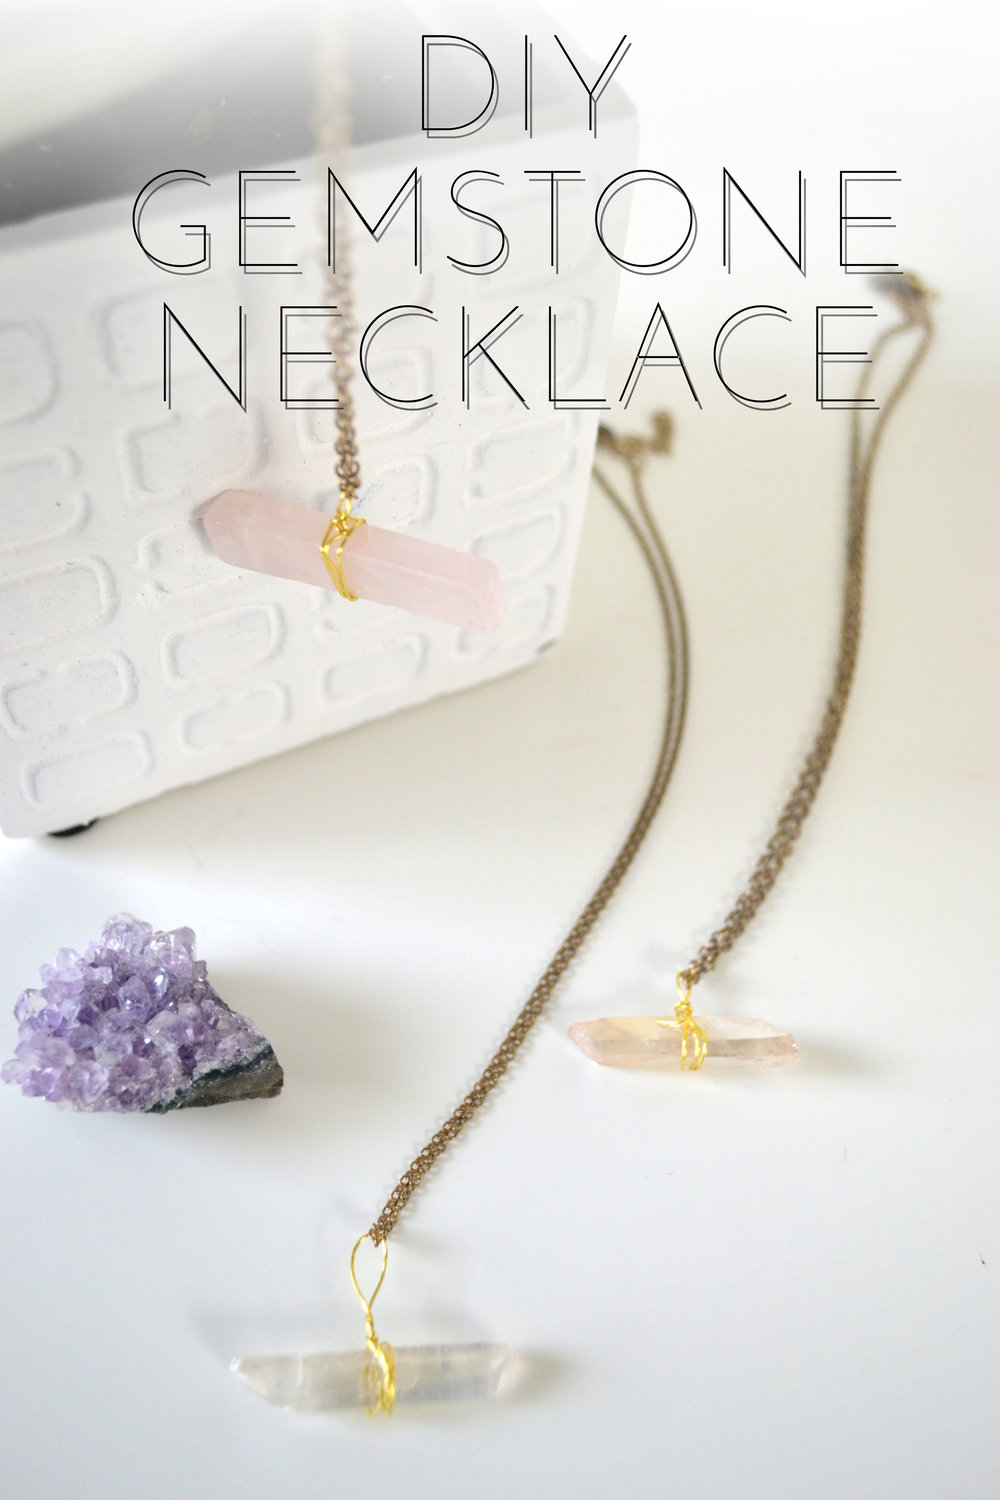 DIY Quartz Necklace